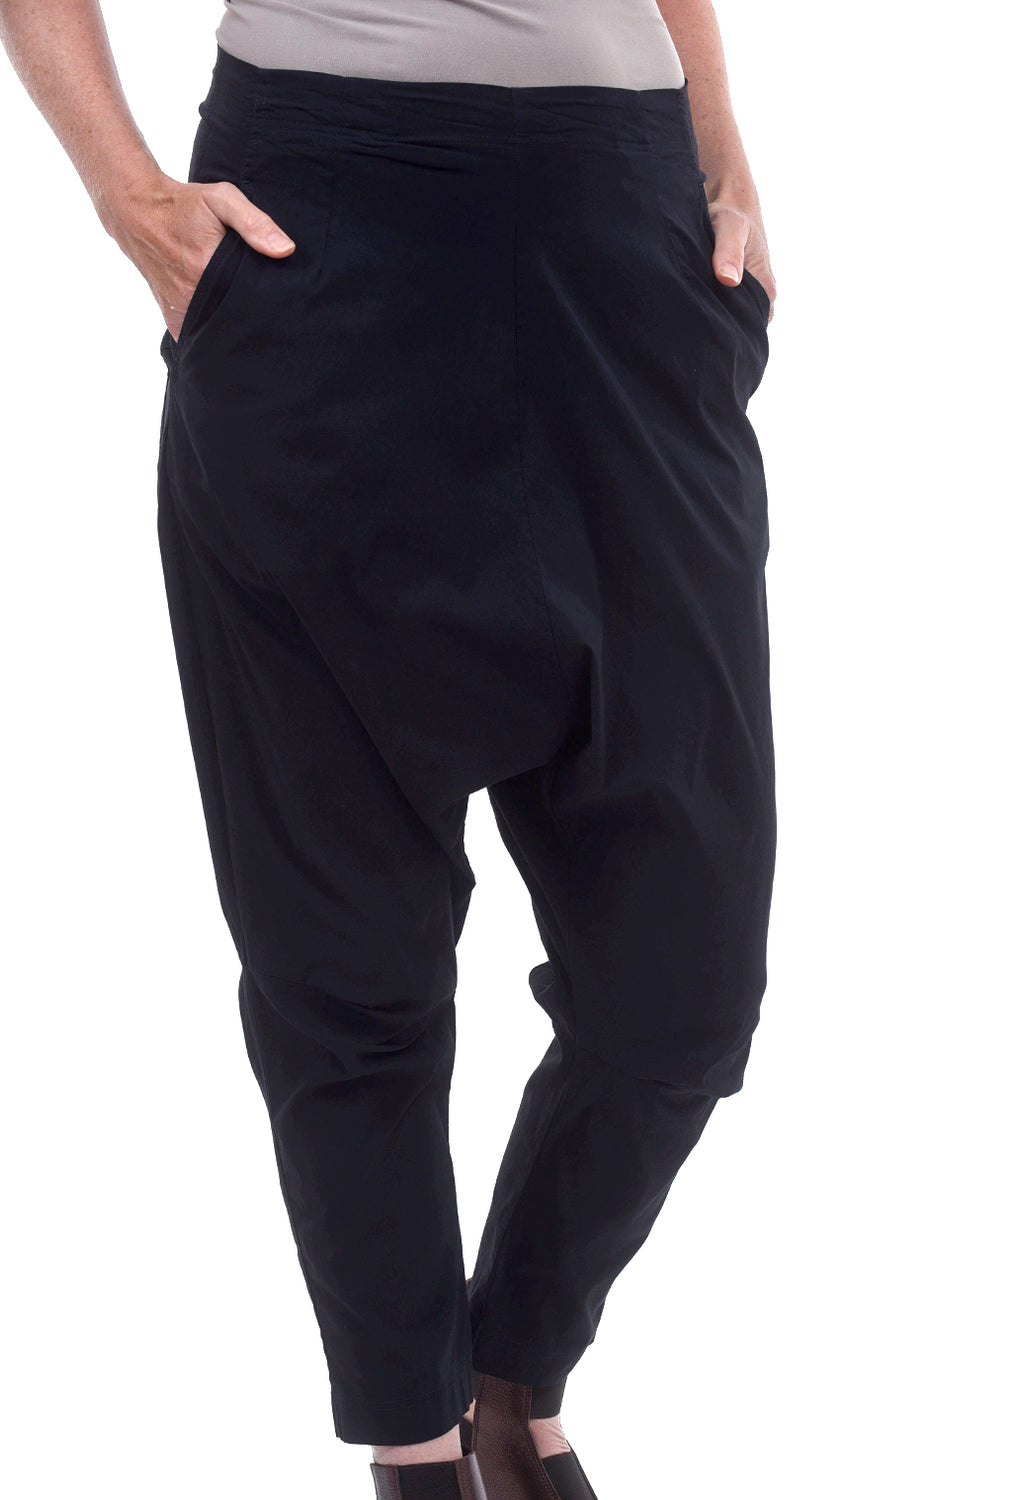 Rundholz Black Label Stretch Slouch Pants, Martinique Navy